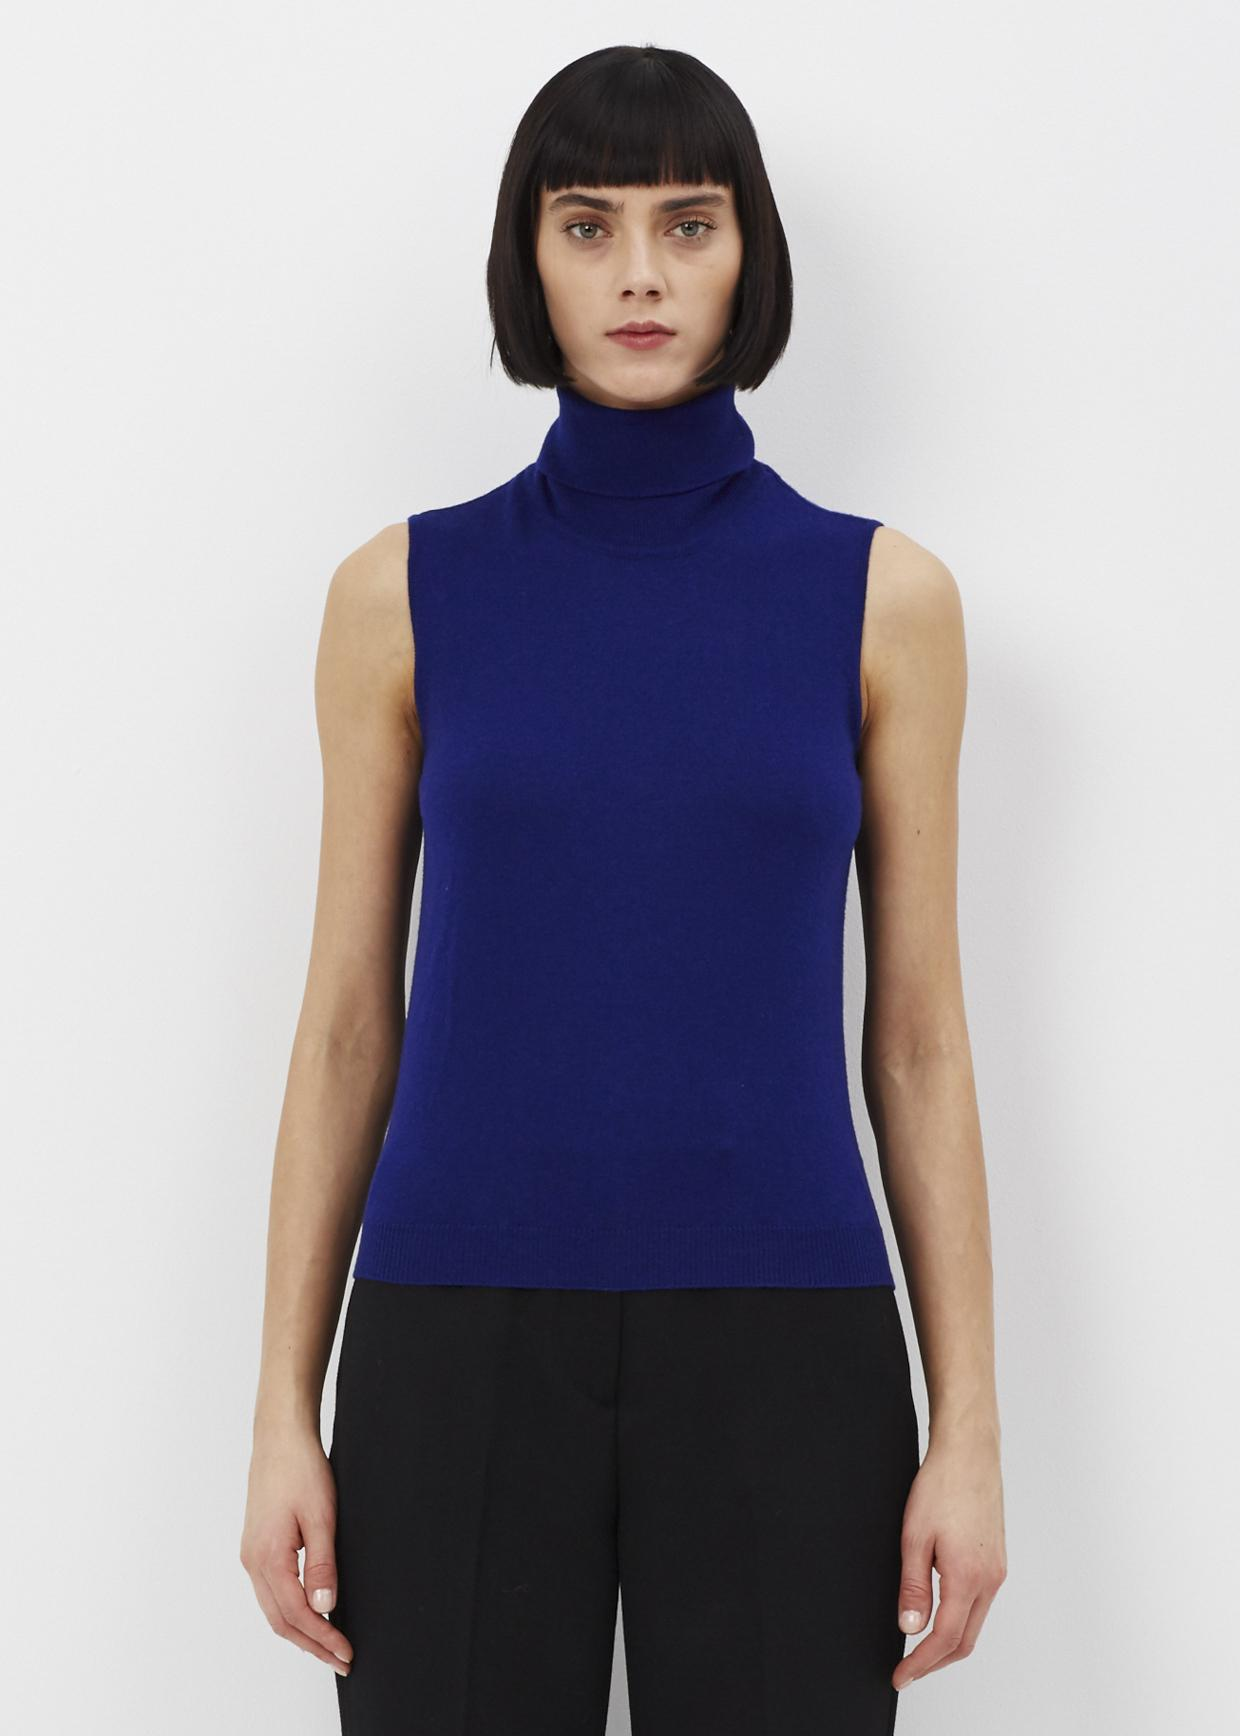 Prada's sleeveless turtleneck sweater is composed of beige, light blue, and yellow rib-knit virgin wool showcasing a zigzag and diamond pattern. Part of Runway Look 27, this sporty style is intarsia-knit at the front with a multicolored logo stripe.